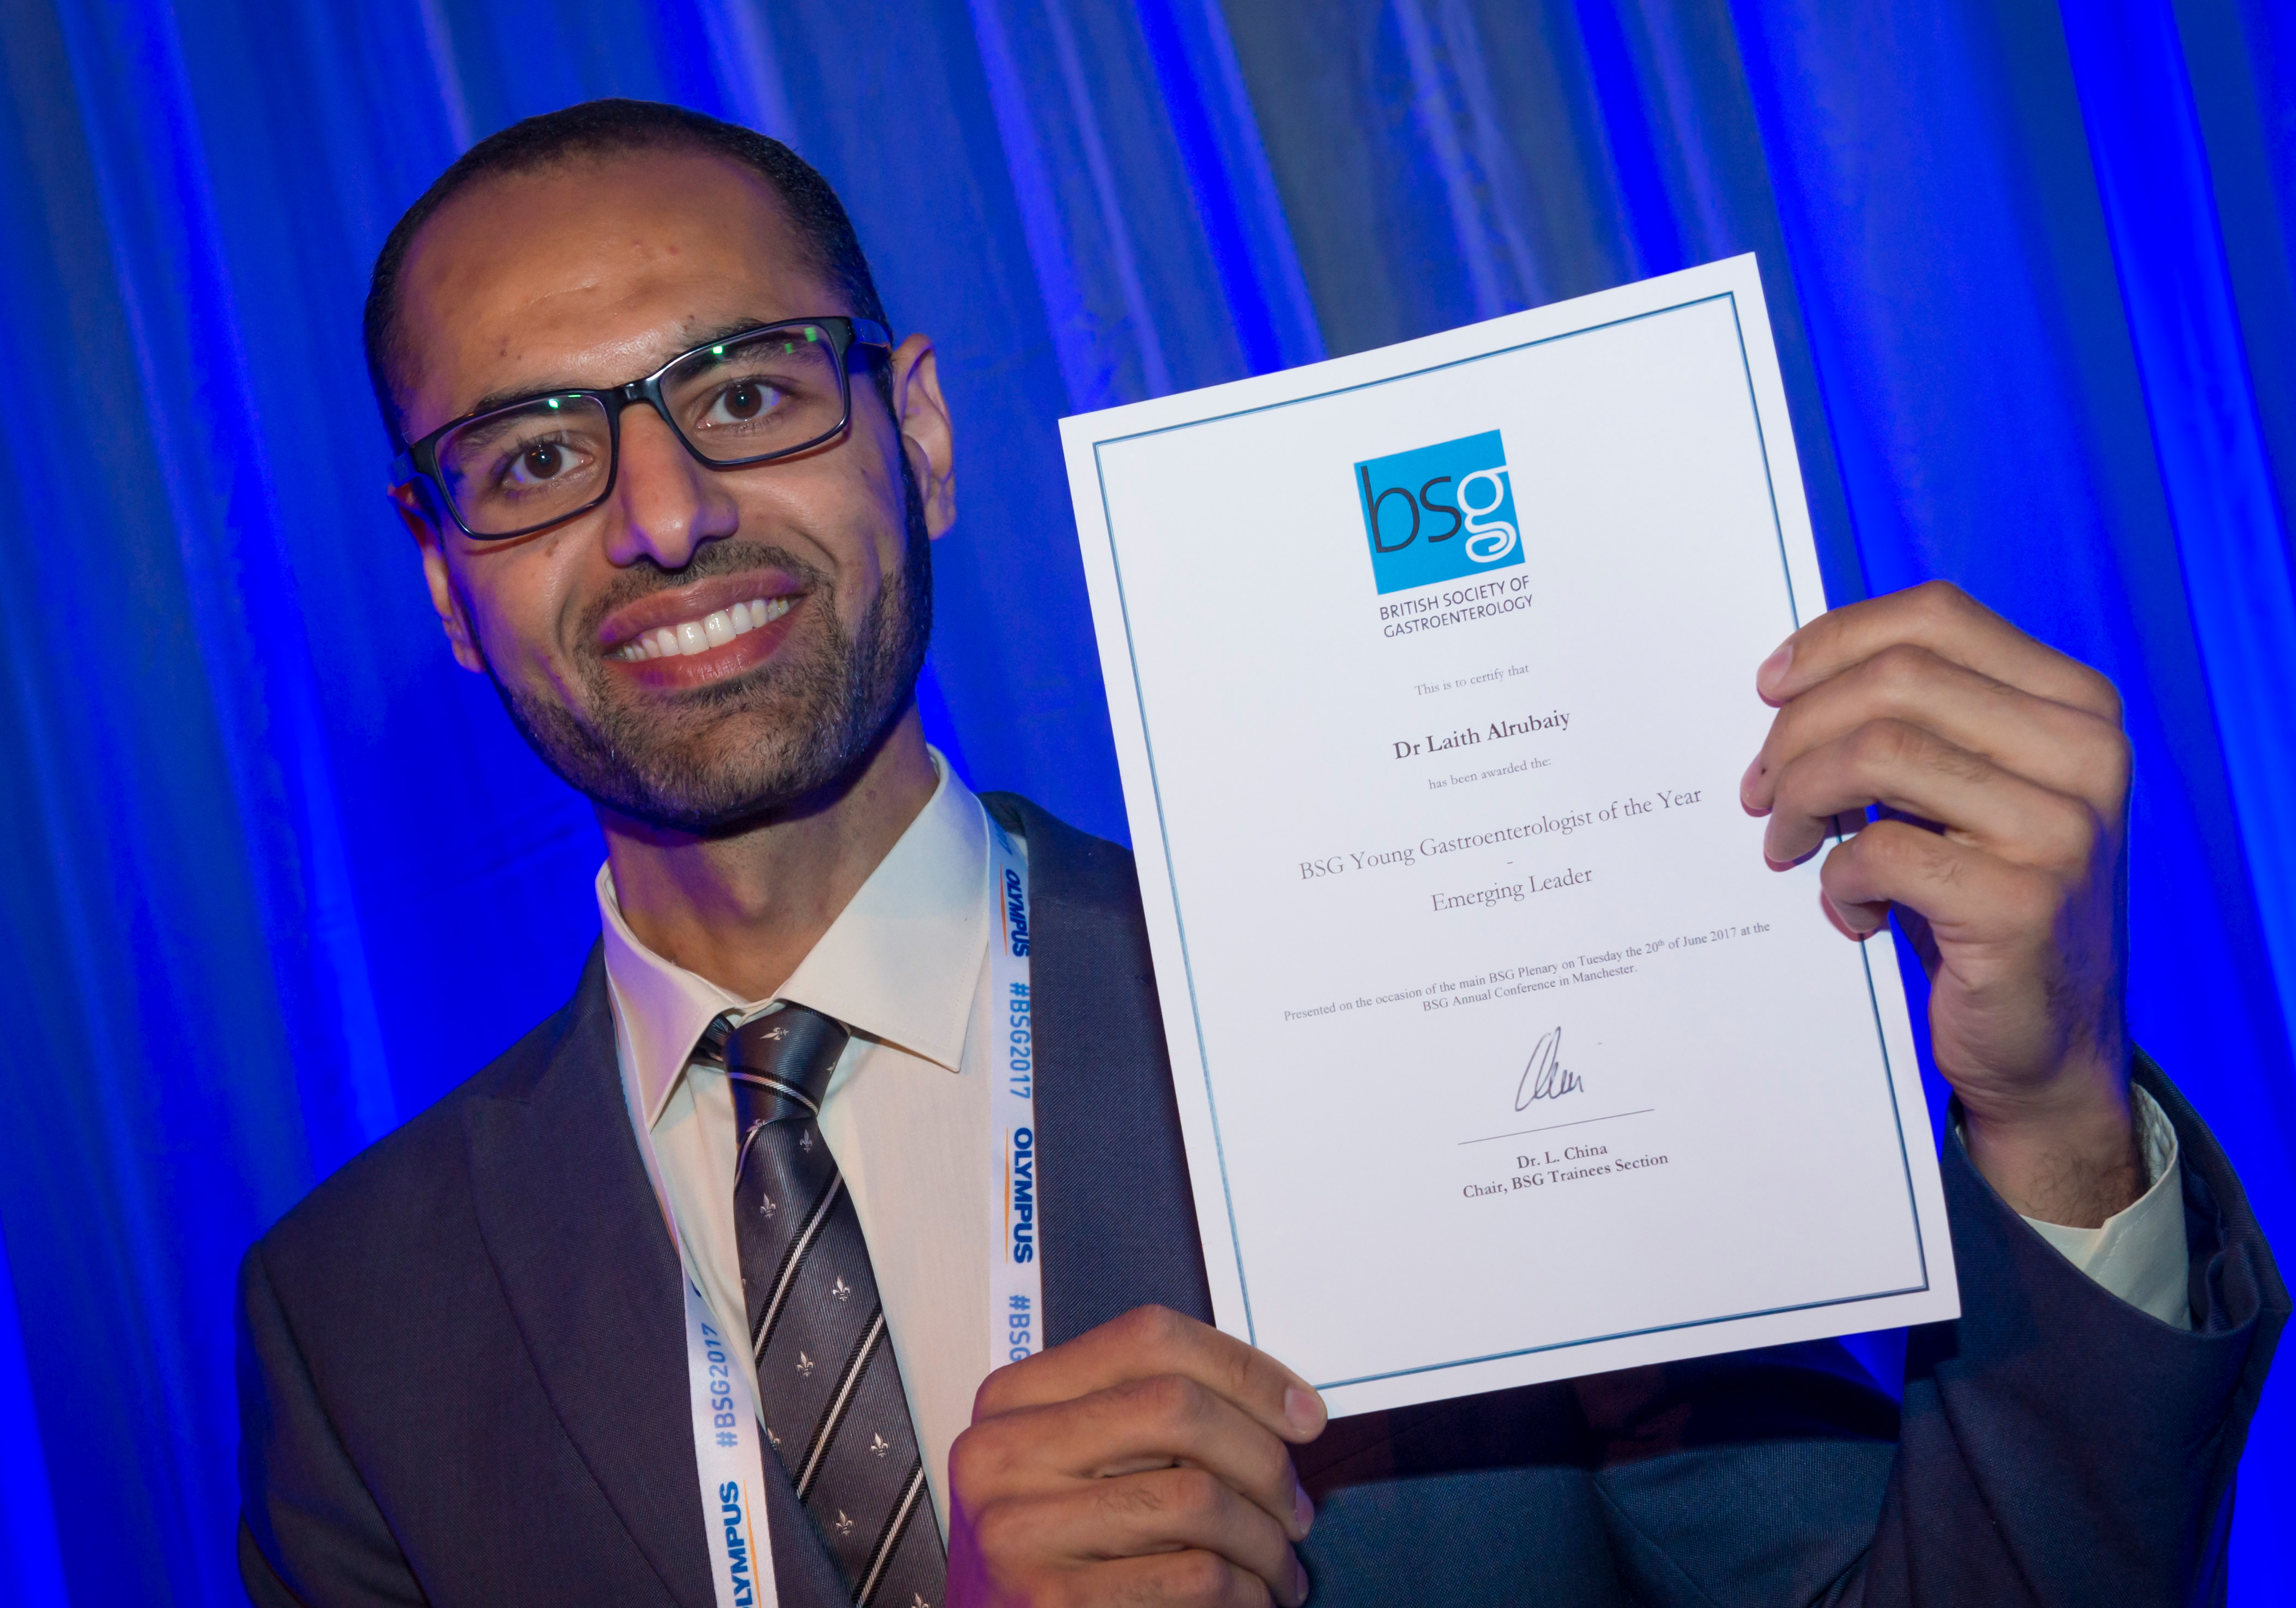 Swansea University lecturer wins BSG Young